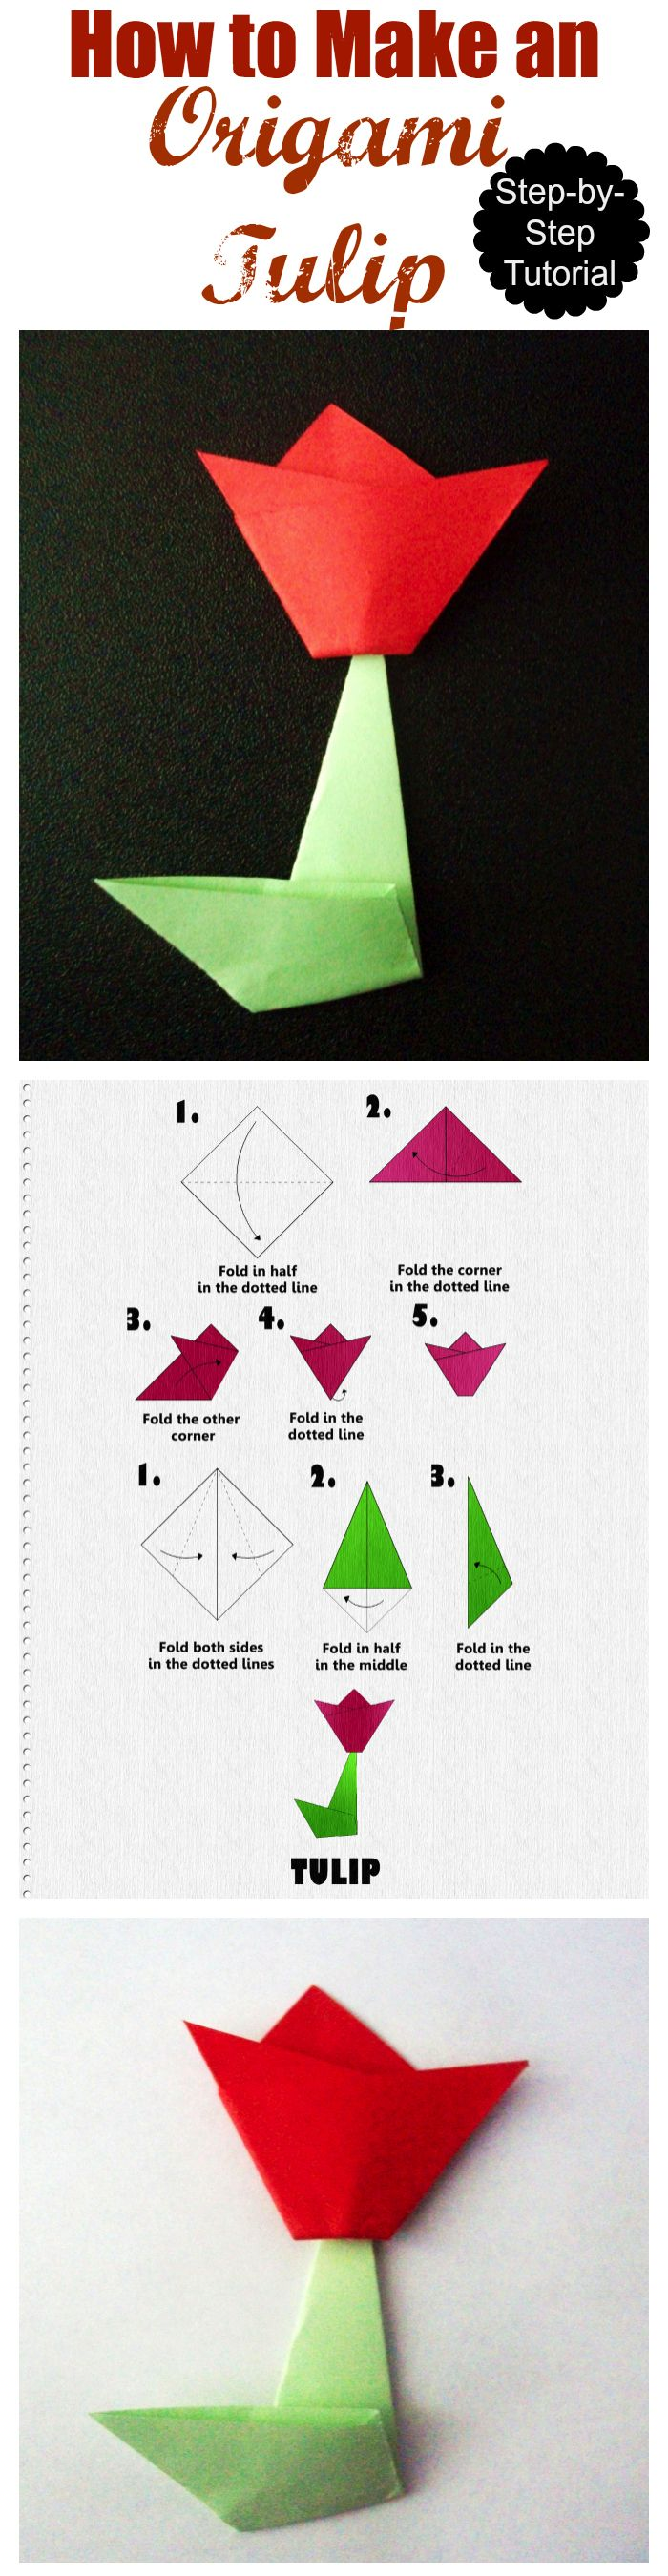 14 Best Origami Images On Pinterest Origami Paper Paper Crafts